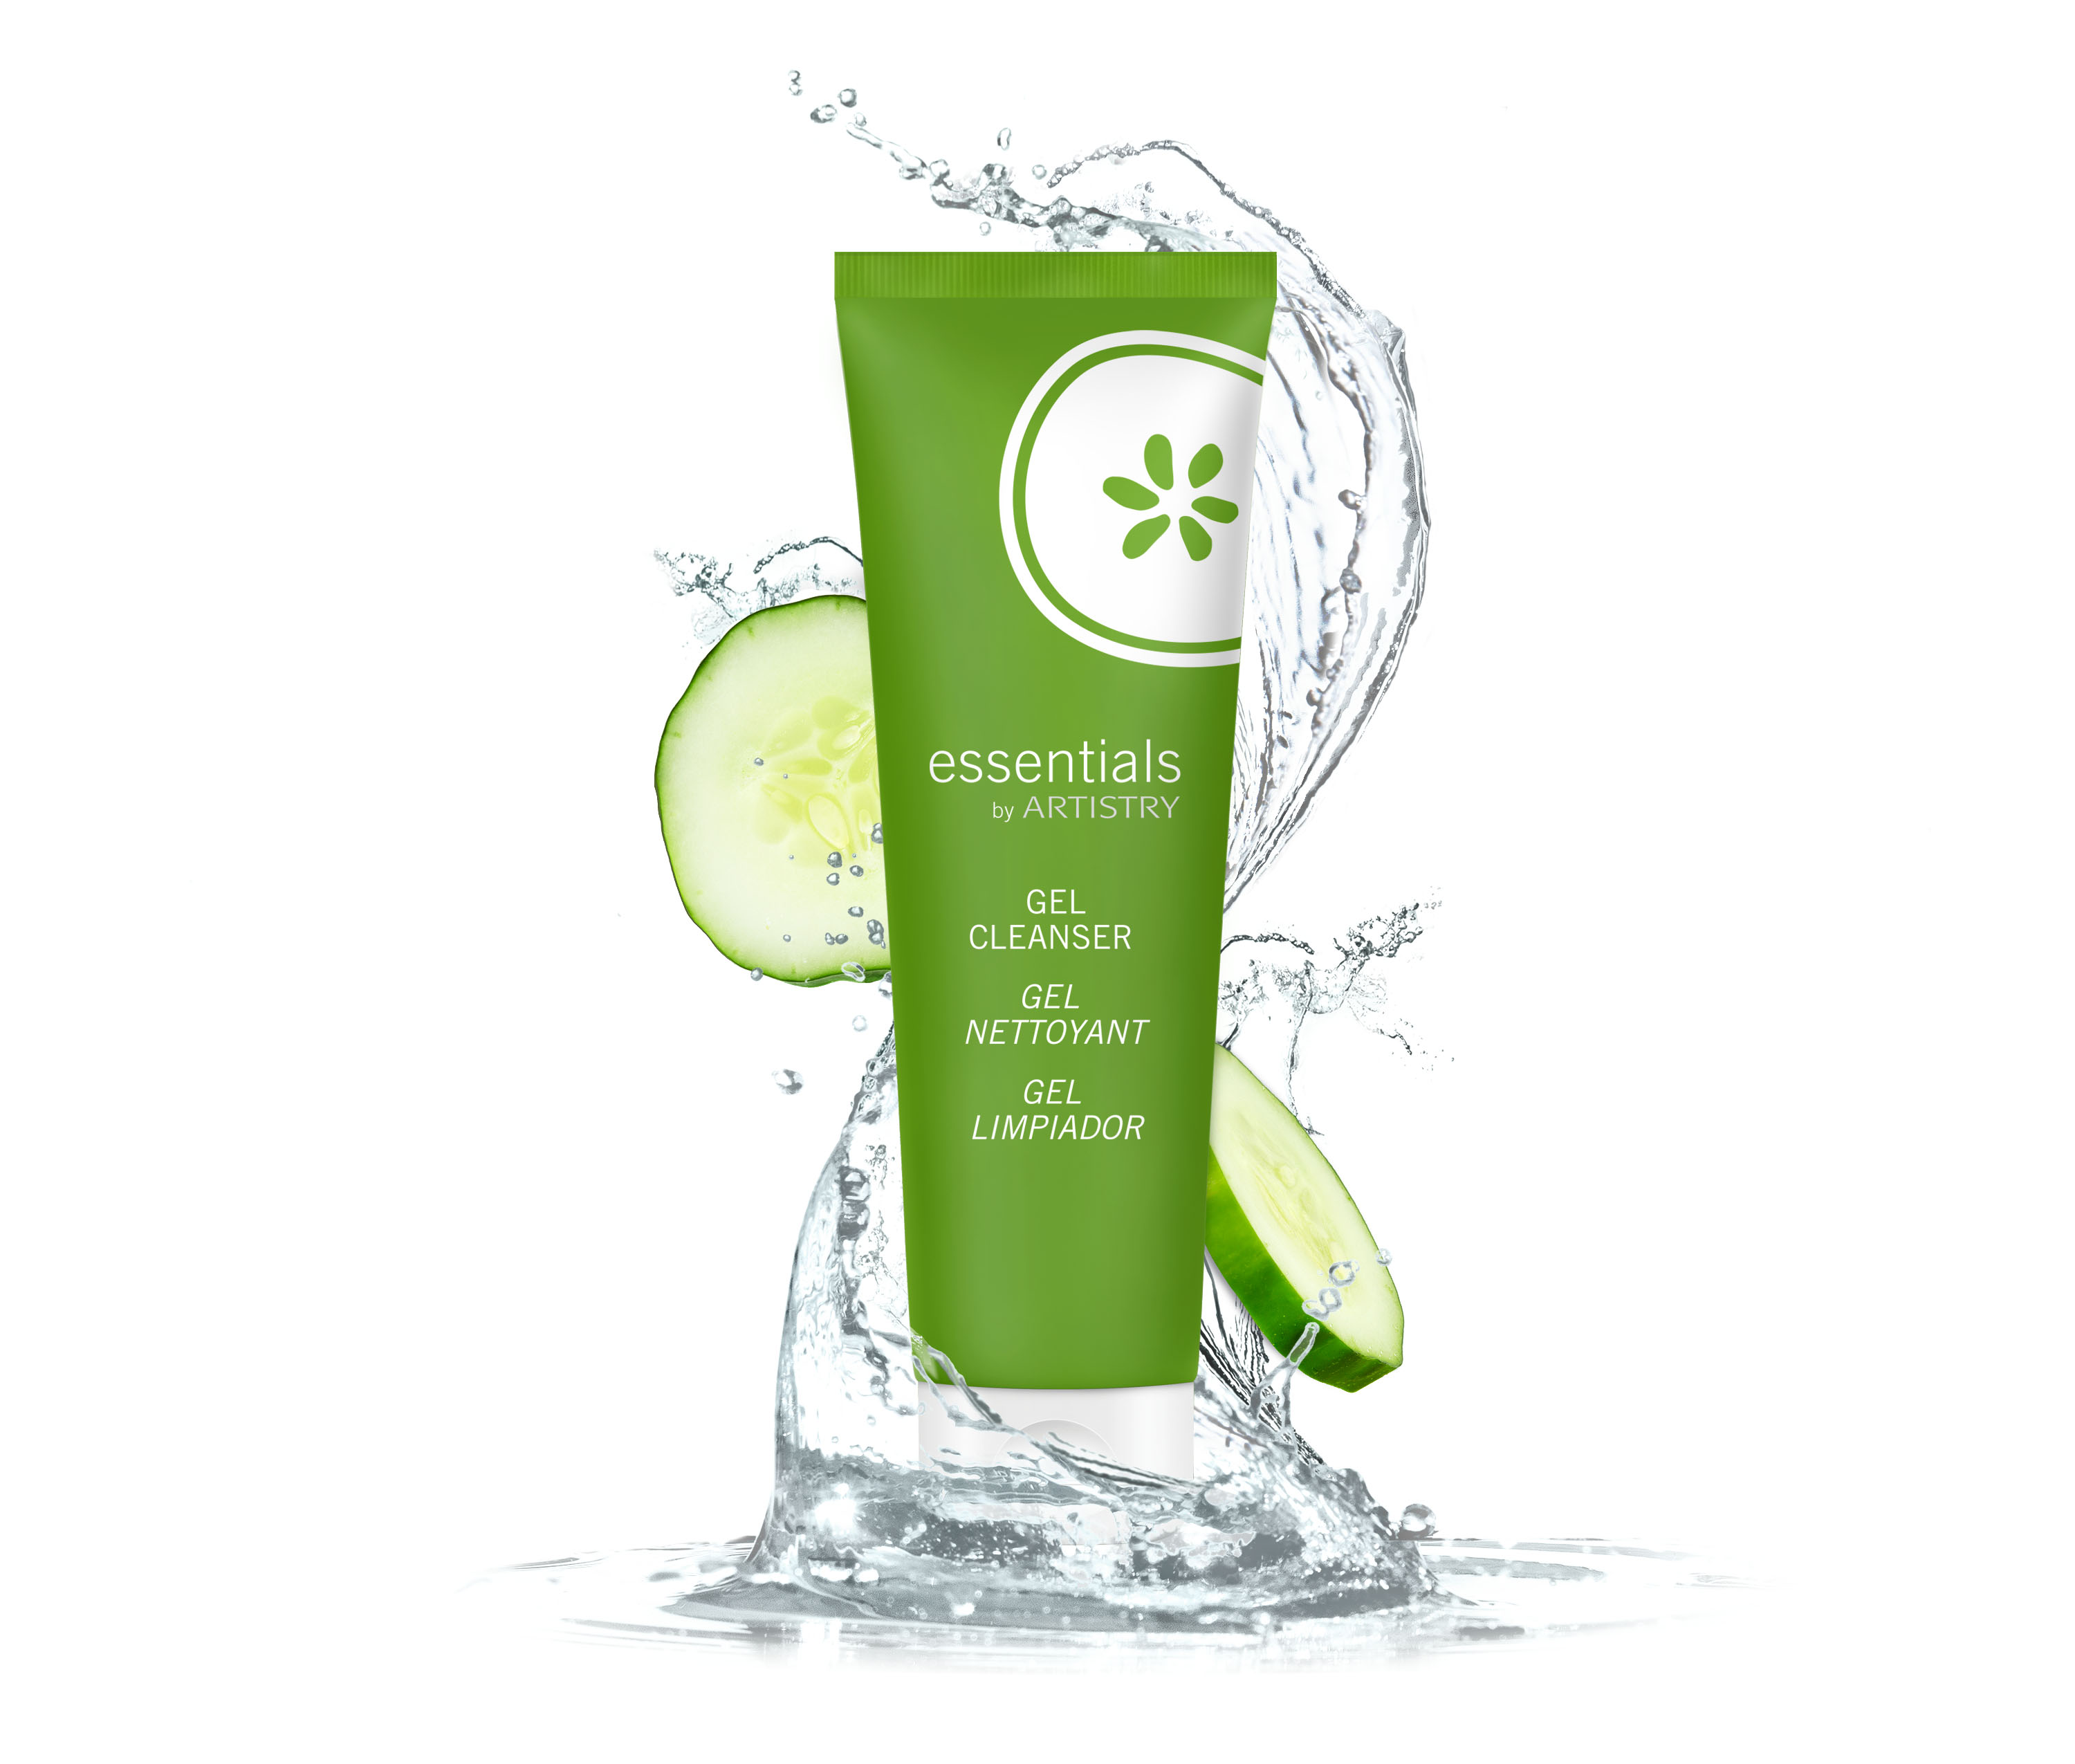 Essentials U25 Gel Cleanser Silo with water and cucumbers to support the U25 launch